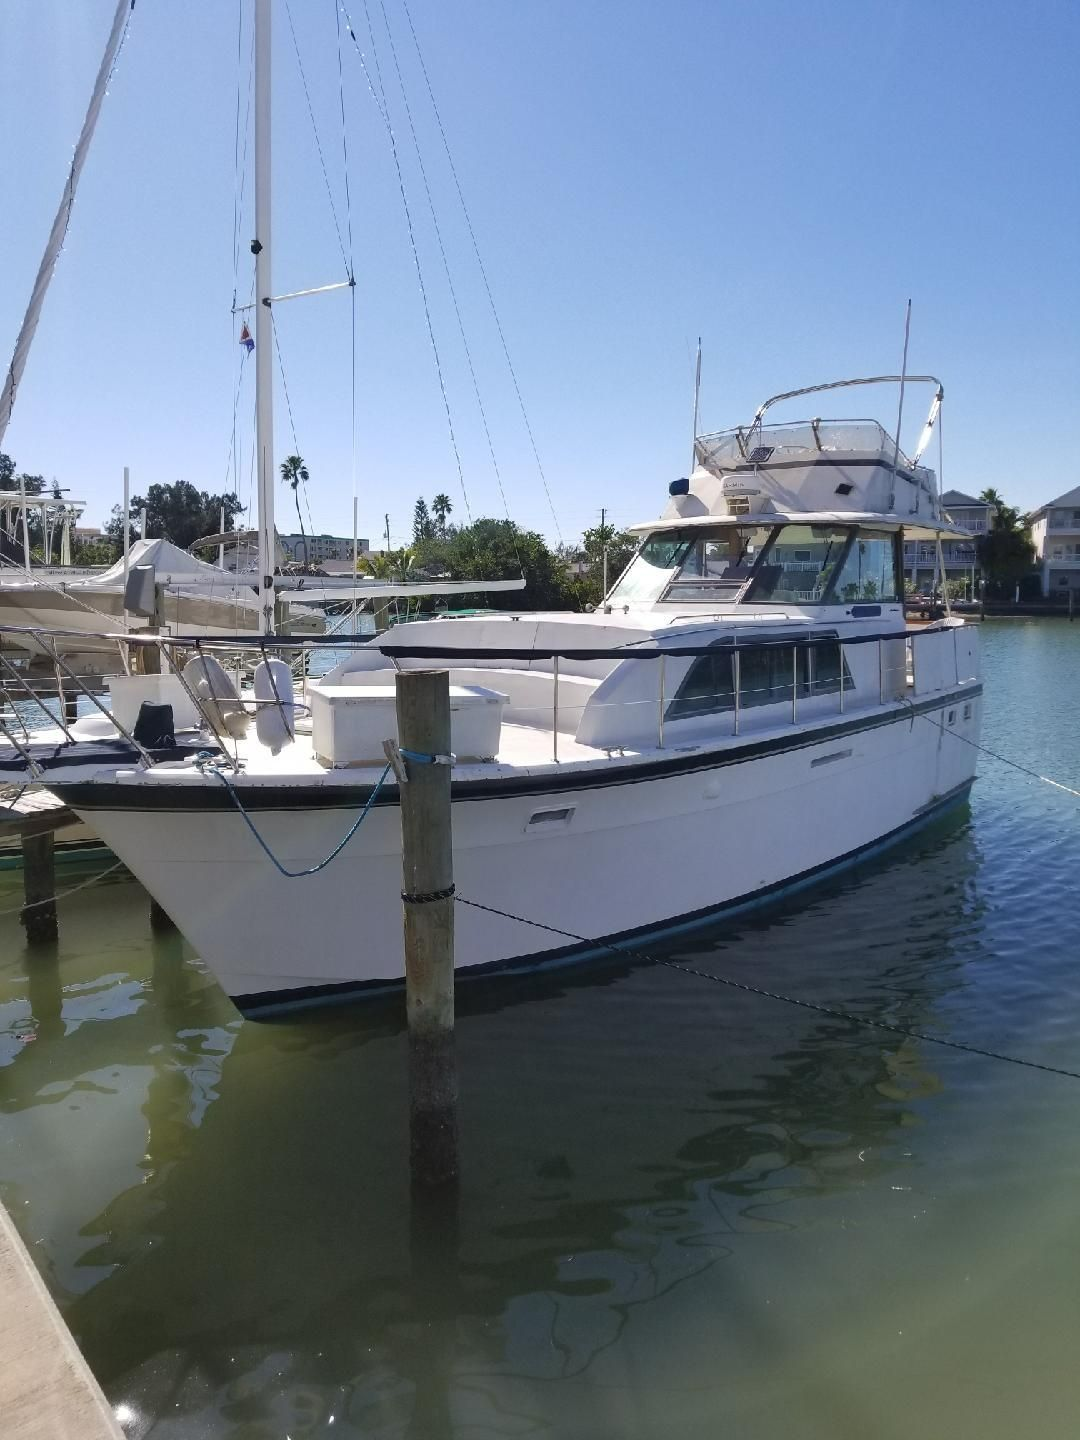 1979 hatteras 43 double cabin power boat for sale www for 72 hatteras motor yacht for sale